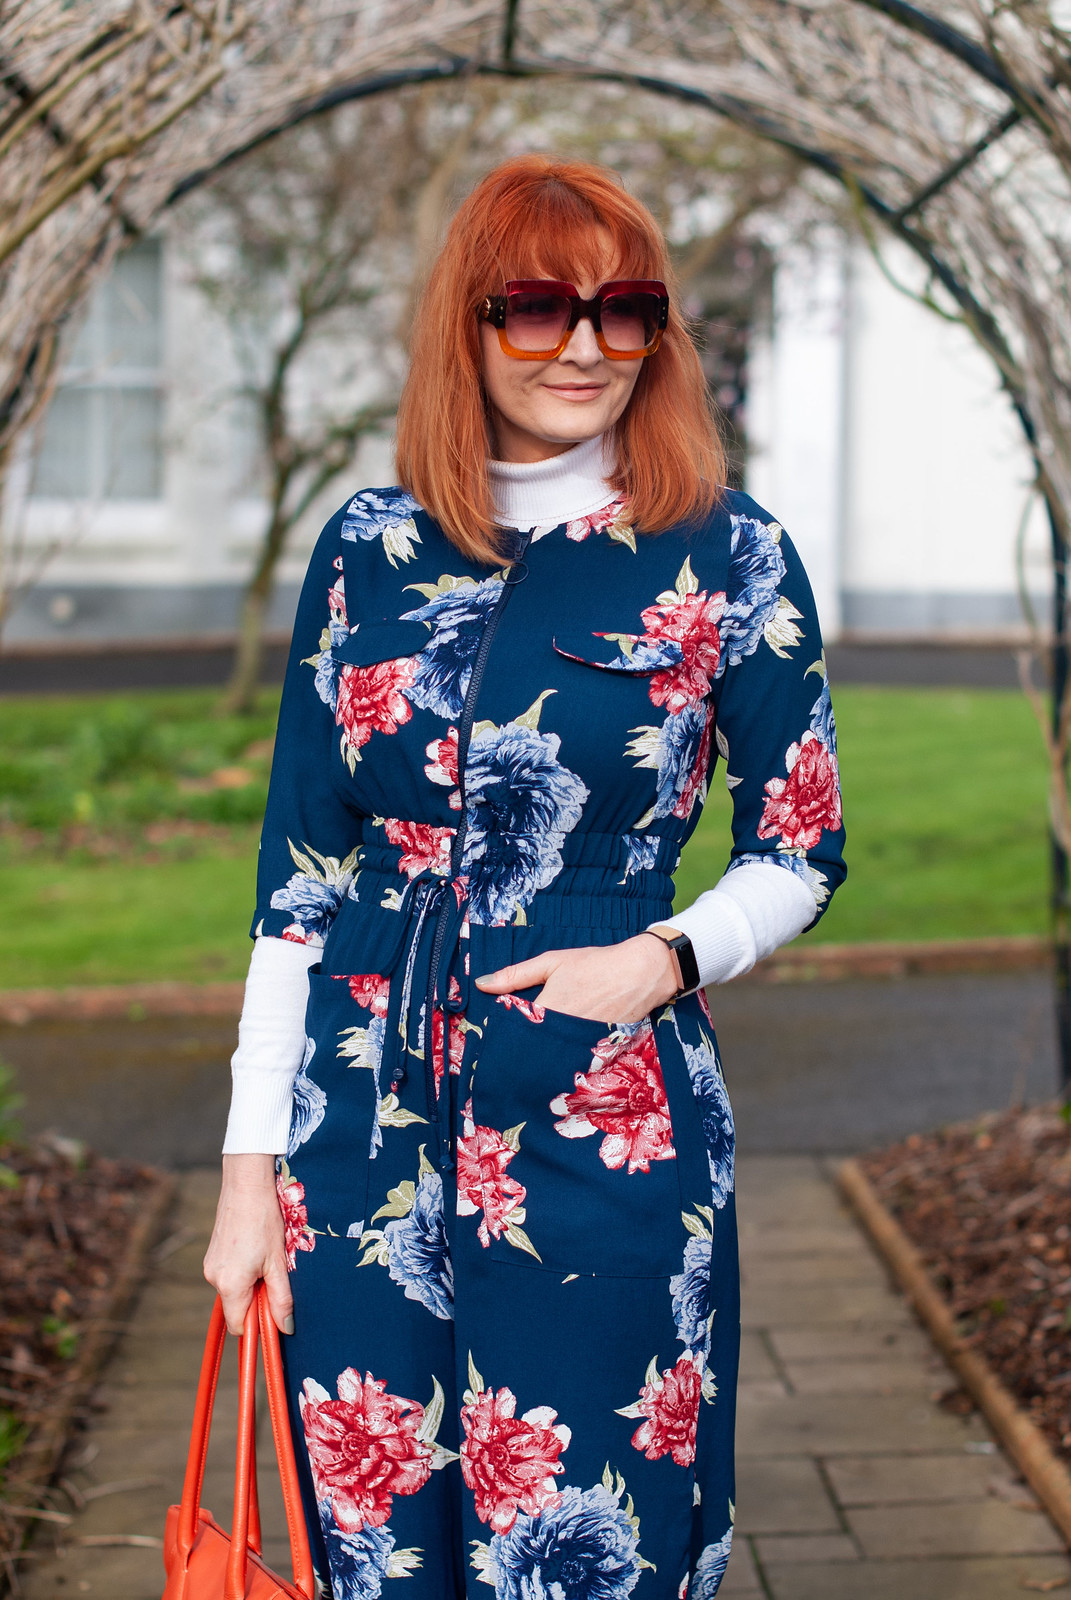 Fashion Over 40: How to Layer a Jumpsuit in Spring (and a Touch of the Elton John) \ navy and red floral jumpsuit \ white roll neck sweater \ burgundy slouch boots \ navy pinstripe coat \ Elton John-style sunglasses | Not Dressed As Lamb style blog